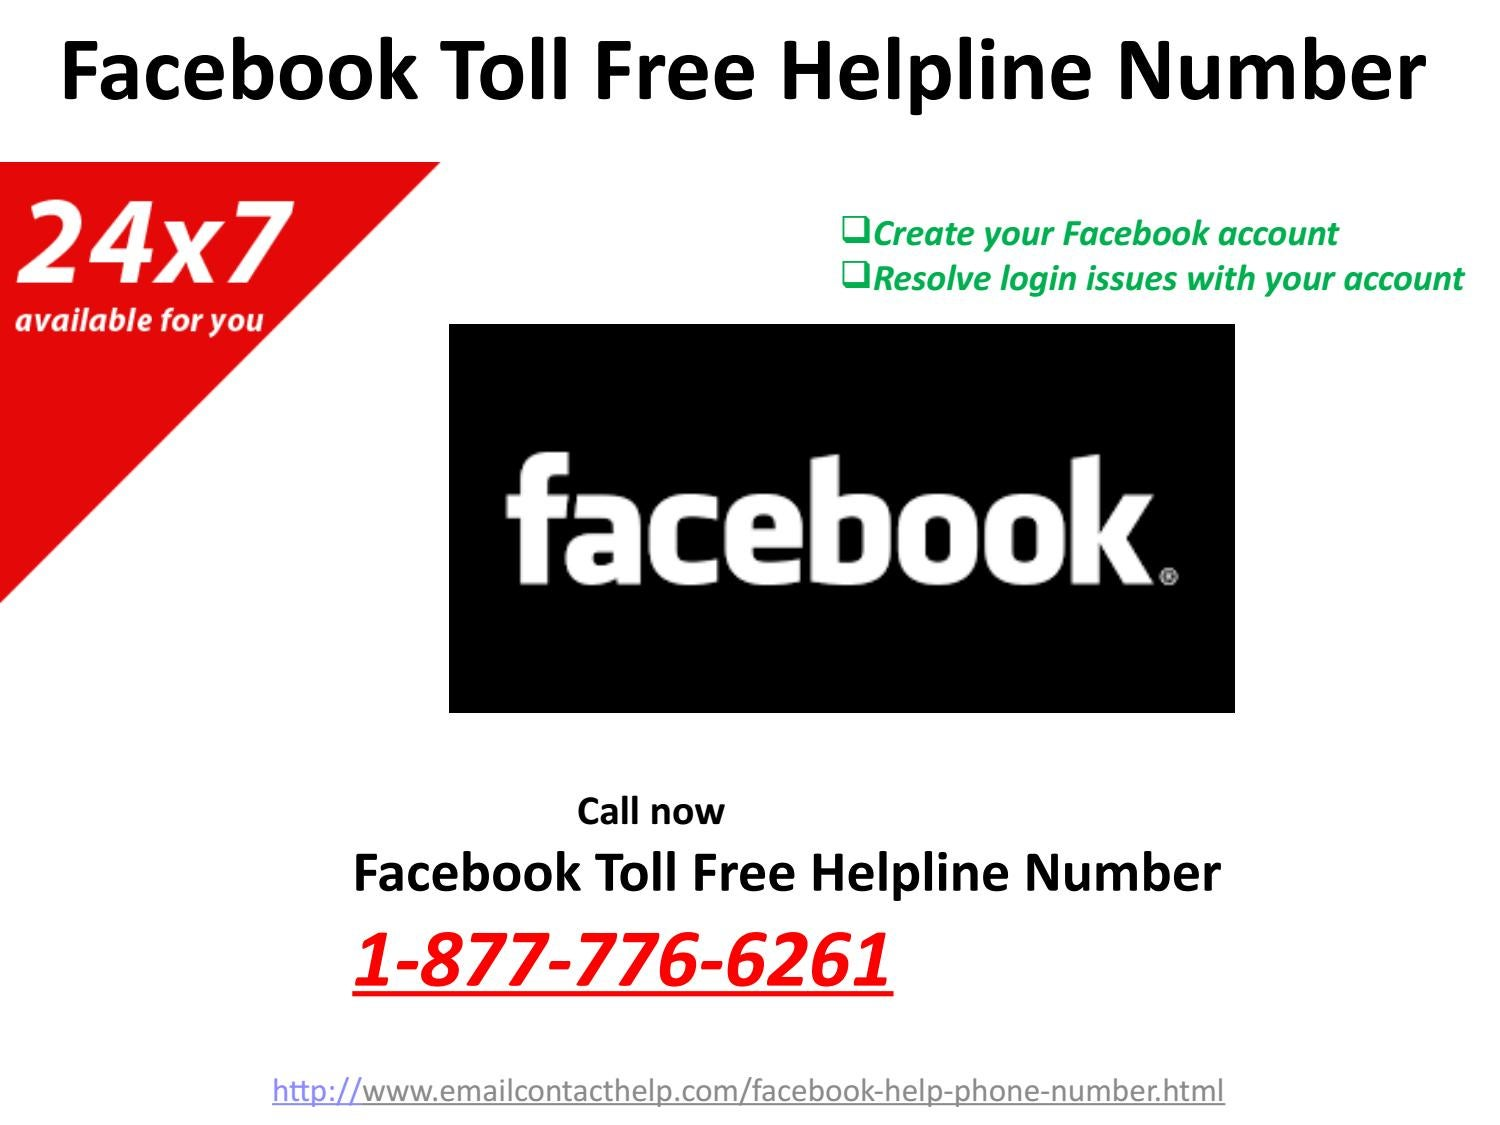 dial facebook help number@1-877-776-6261 for unmatched help by james